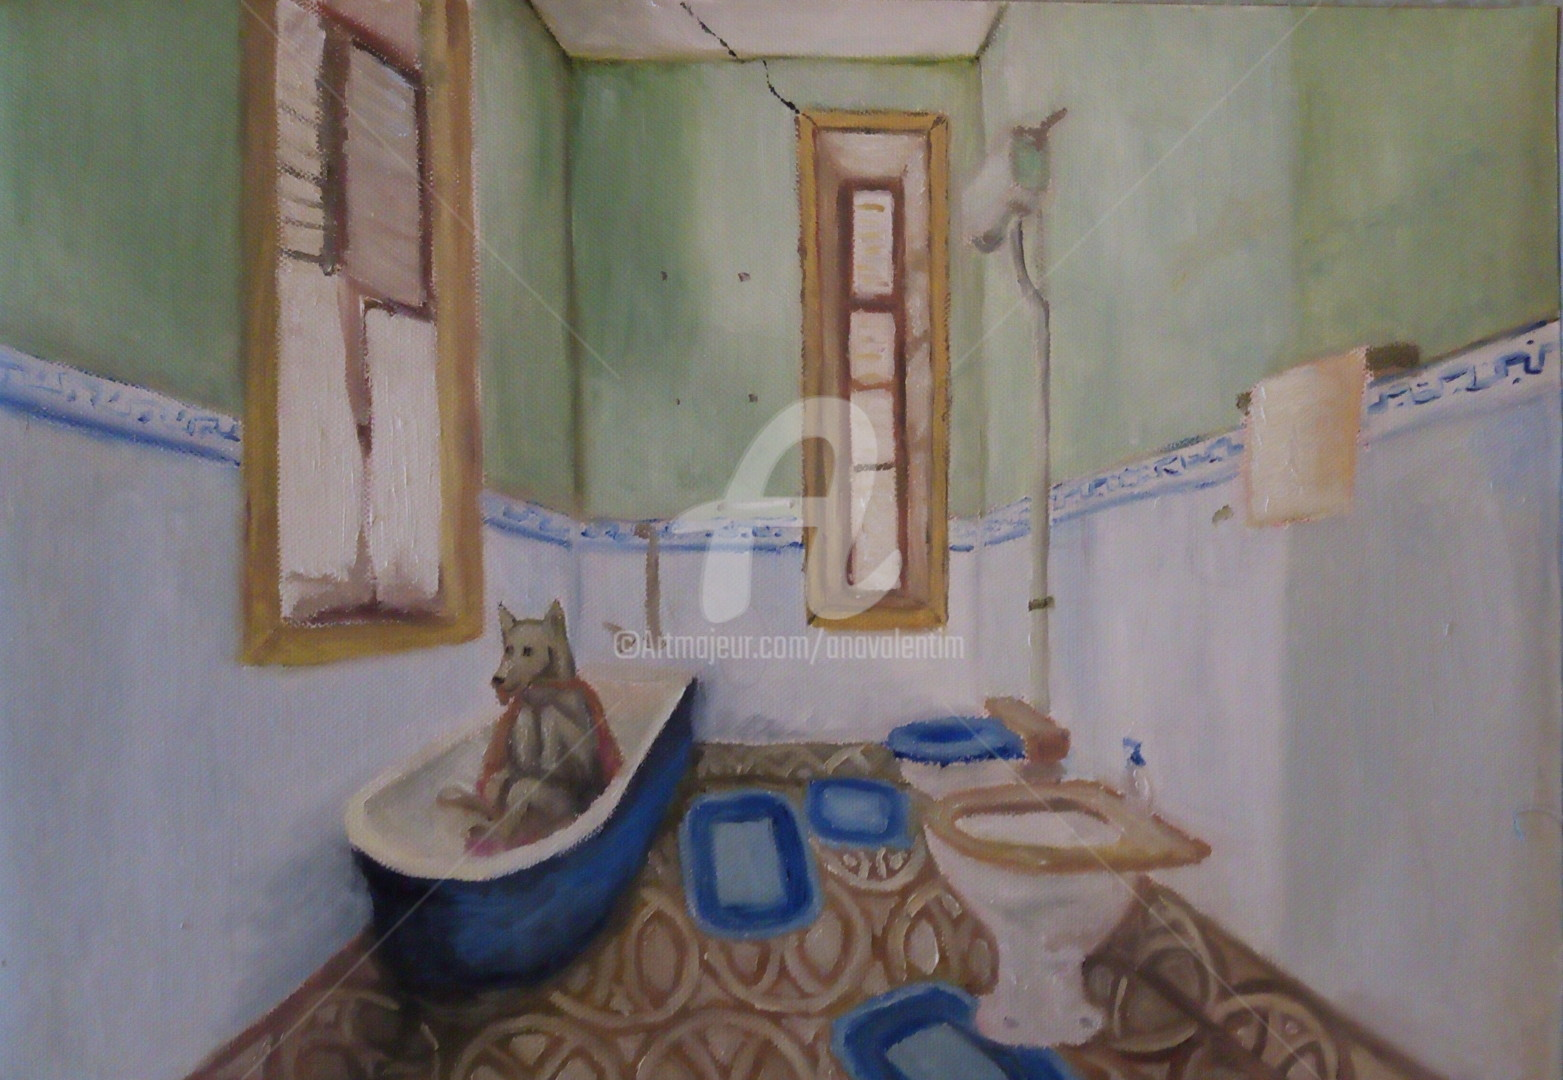 Ana Valentim - Dog in the bathroom